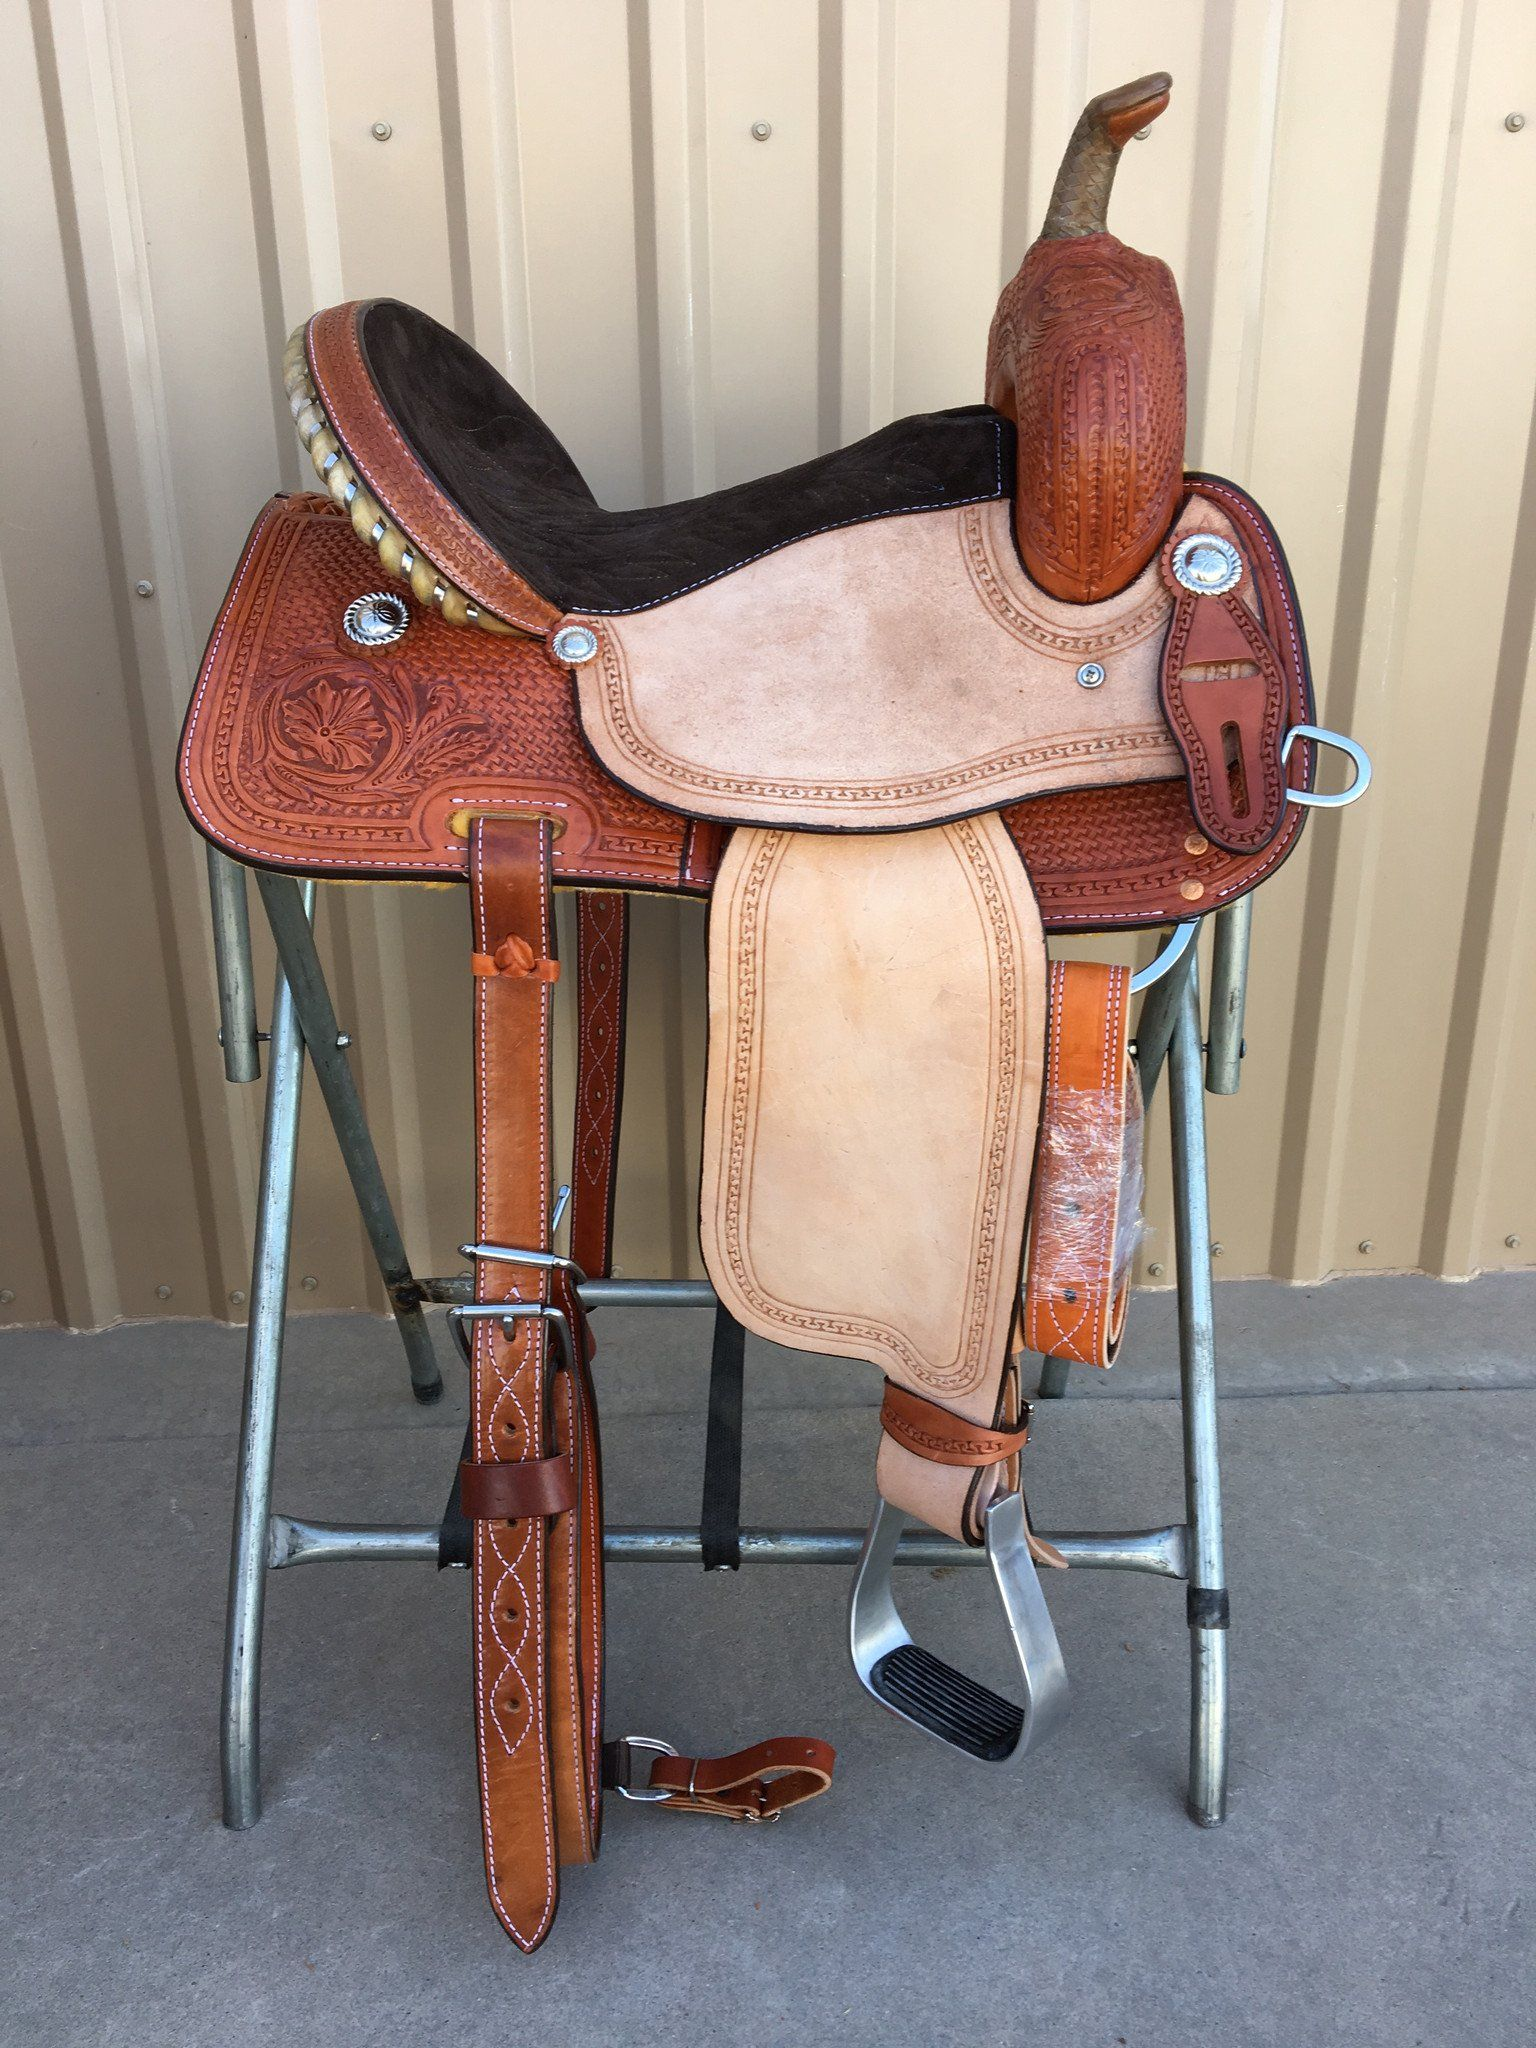 Csb 506 Corriente Barrel Saddle Roping Saddles Barrel Saddle Barrel Racing Saddles